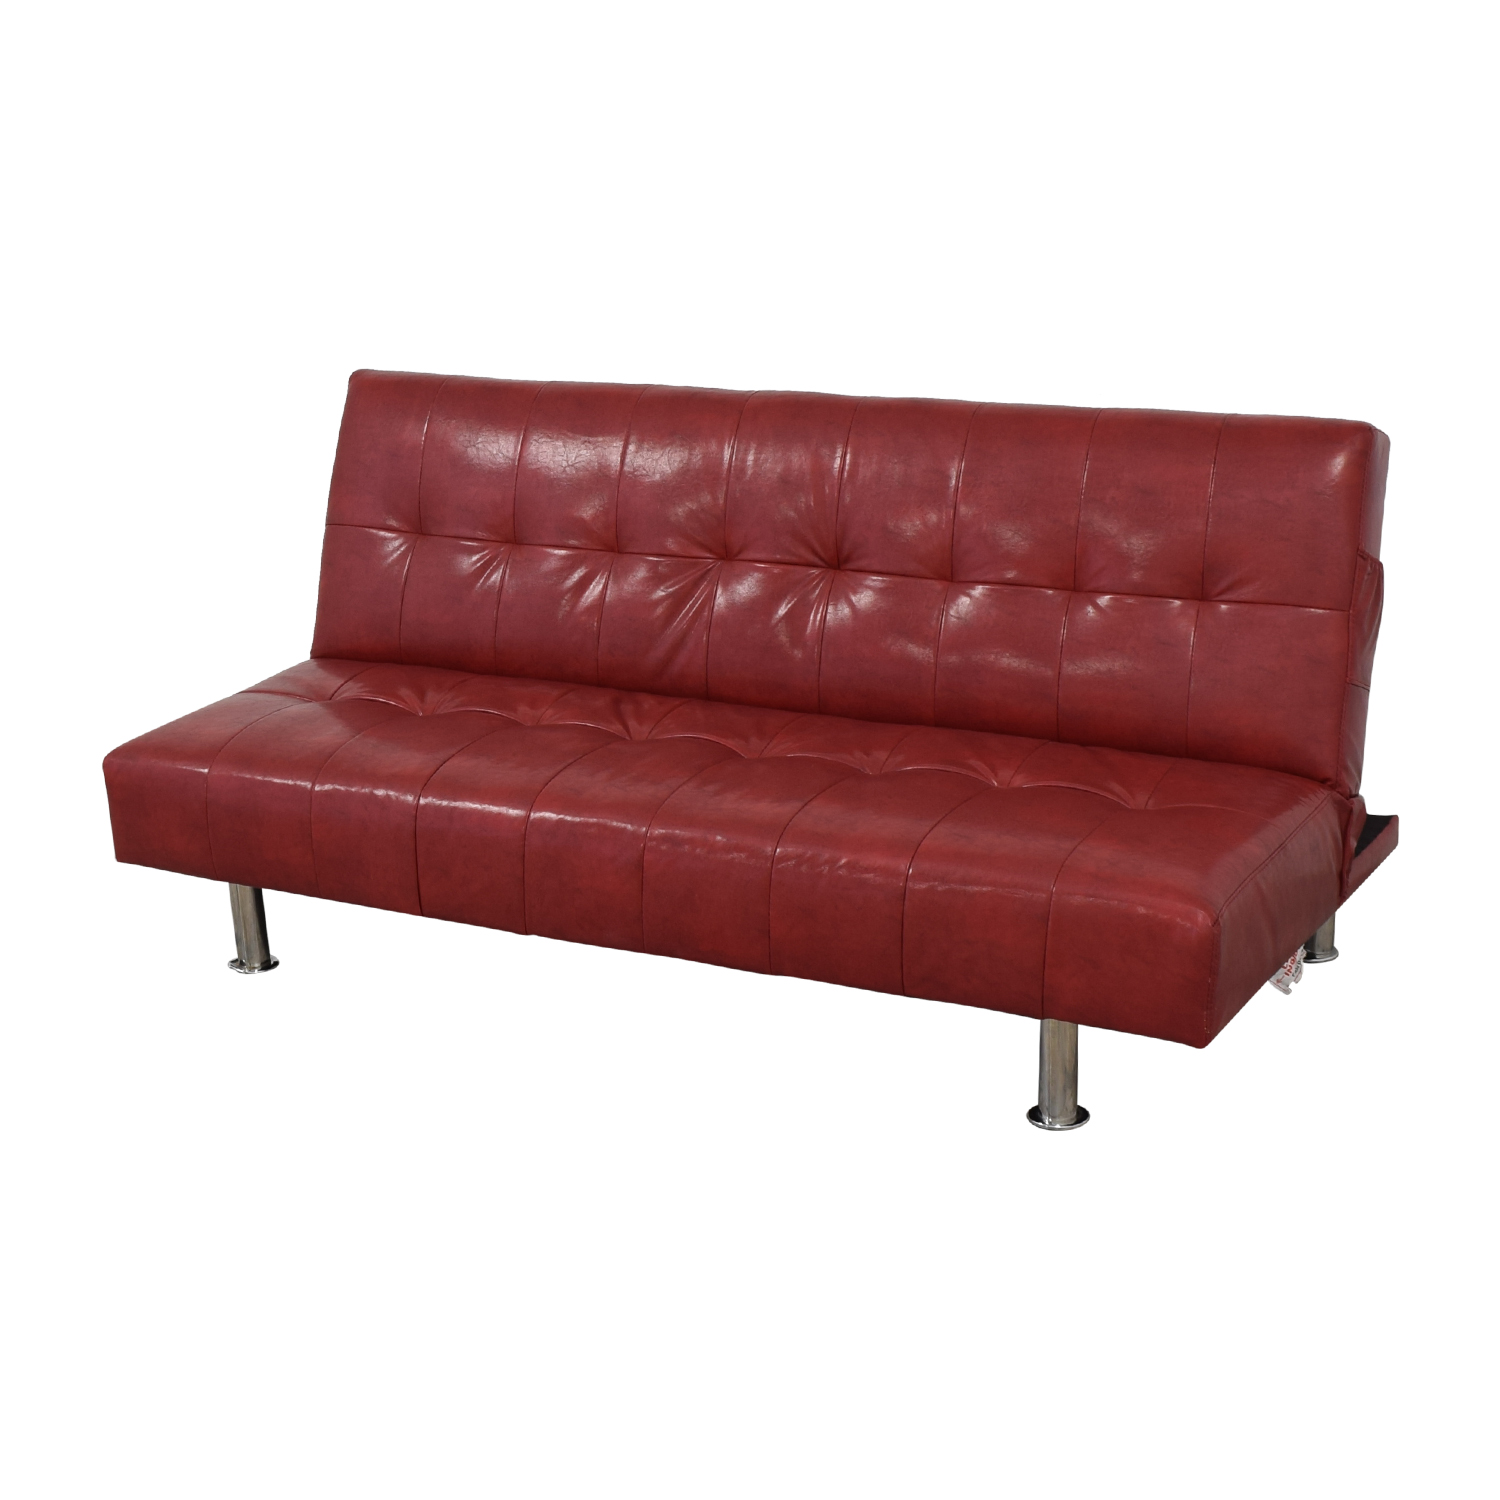 75% OFF - Macy\'s Macy's Red Faux Leather Sofa/Futon / Sofas